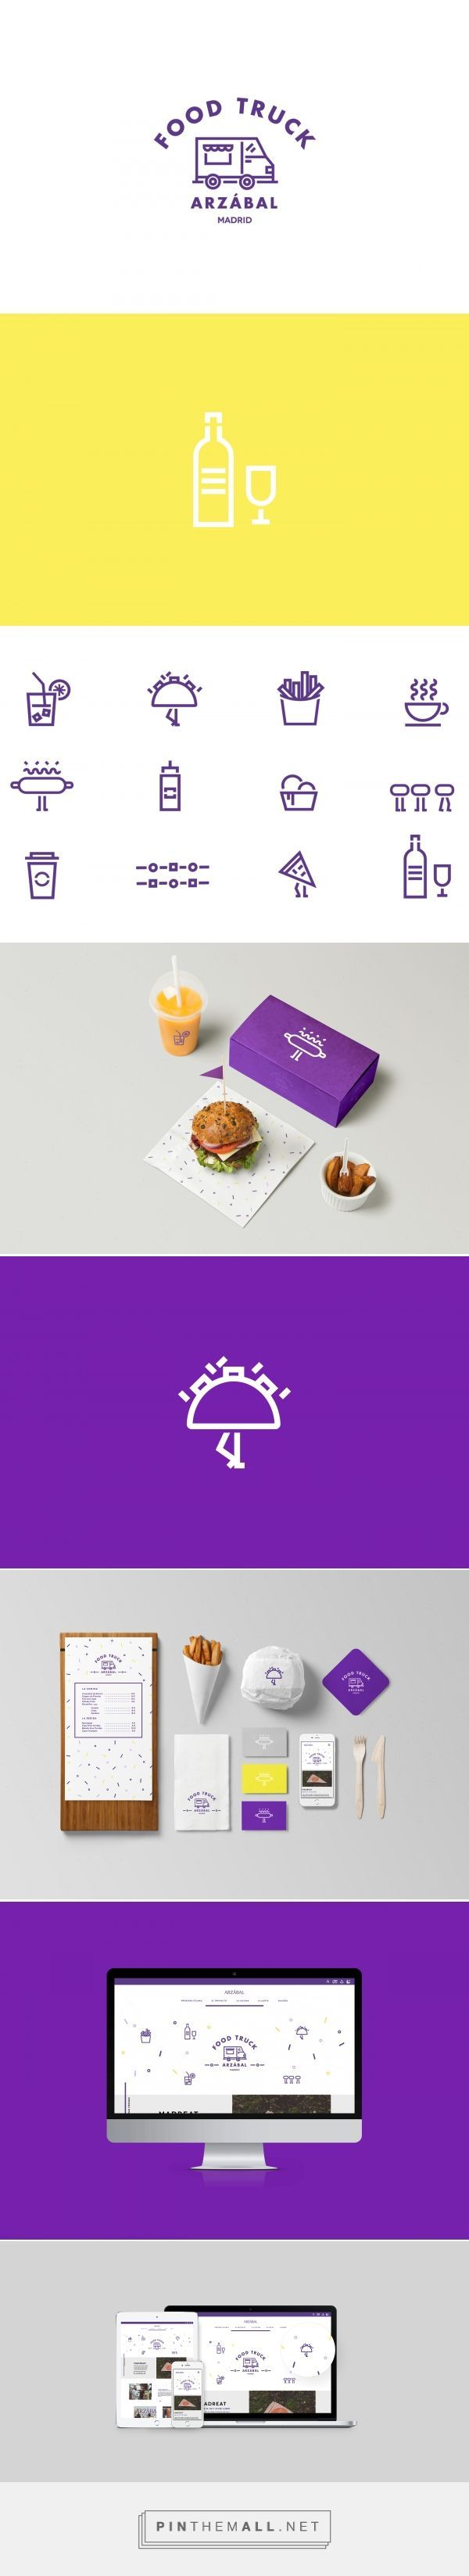 Food Inspiration  The Woork Co  Arzábal Food Truck Branding & Website  a grouped images picture